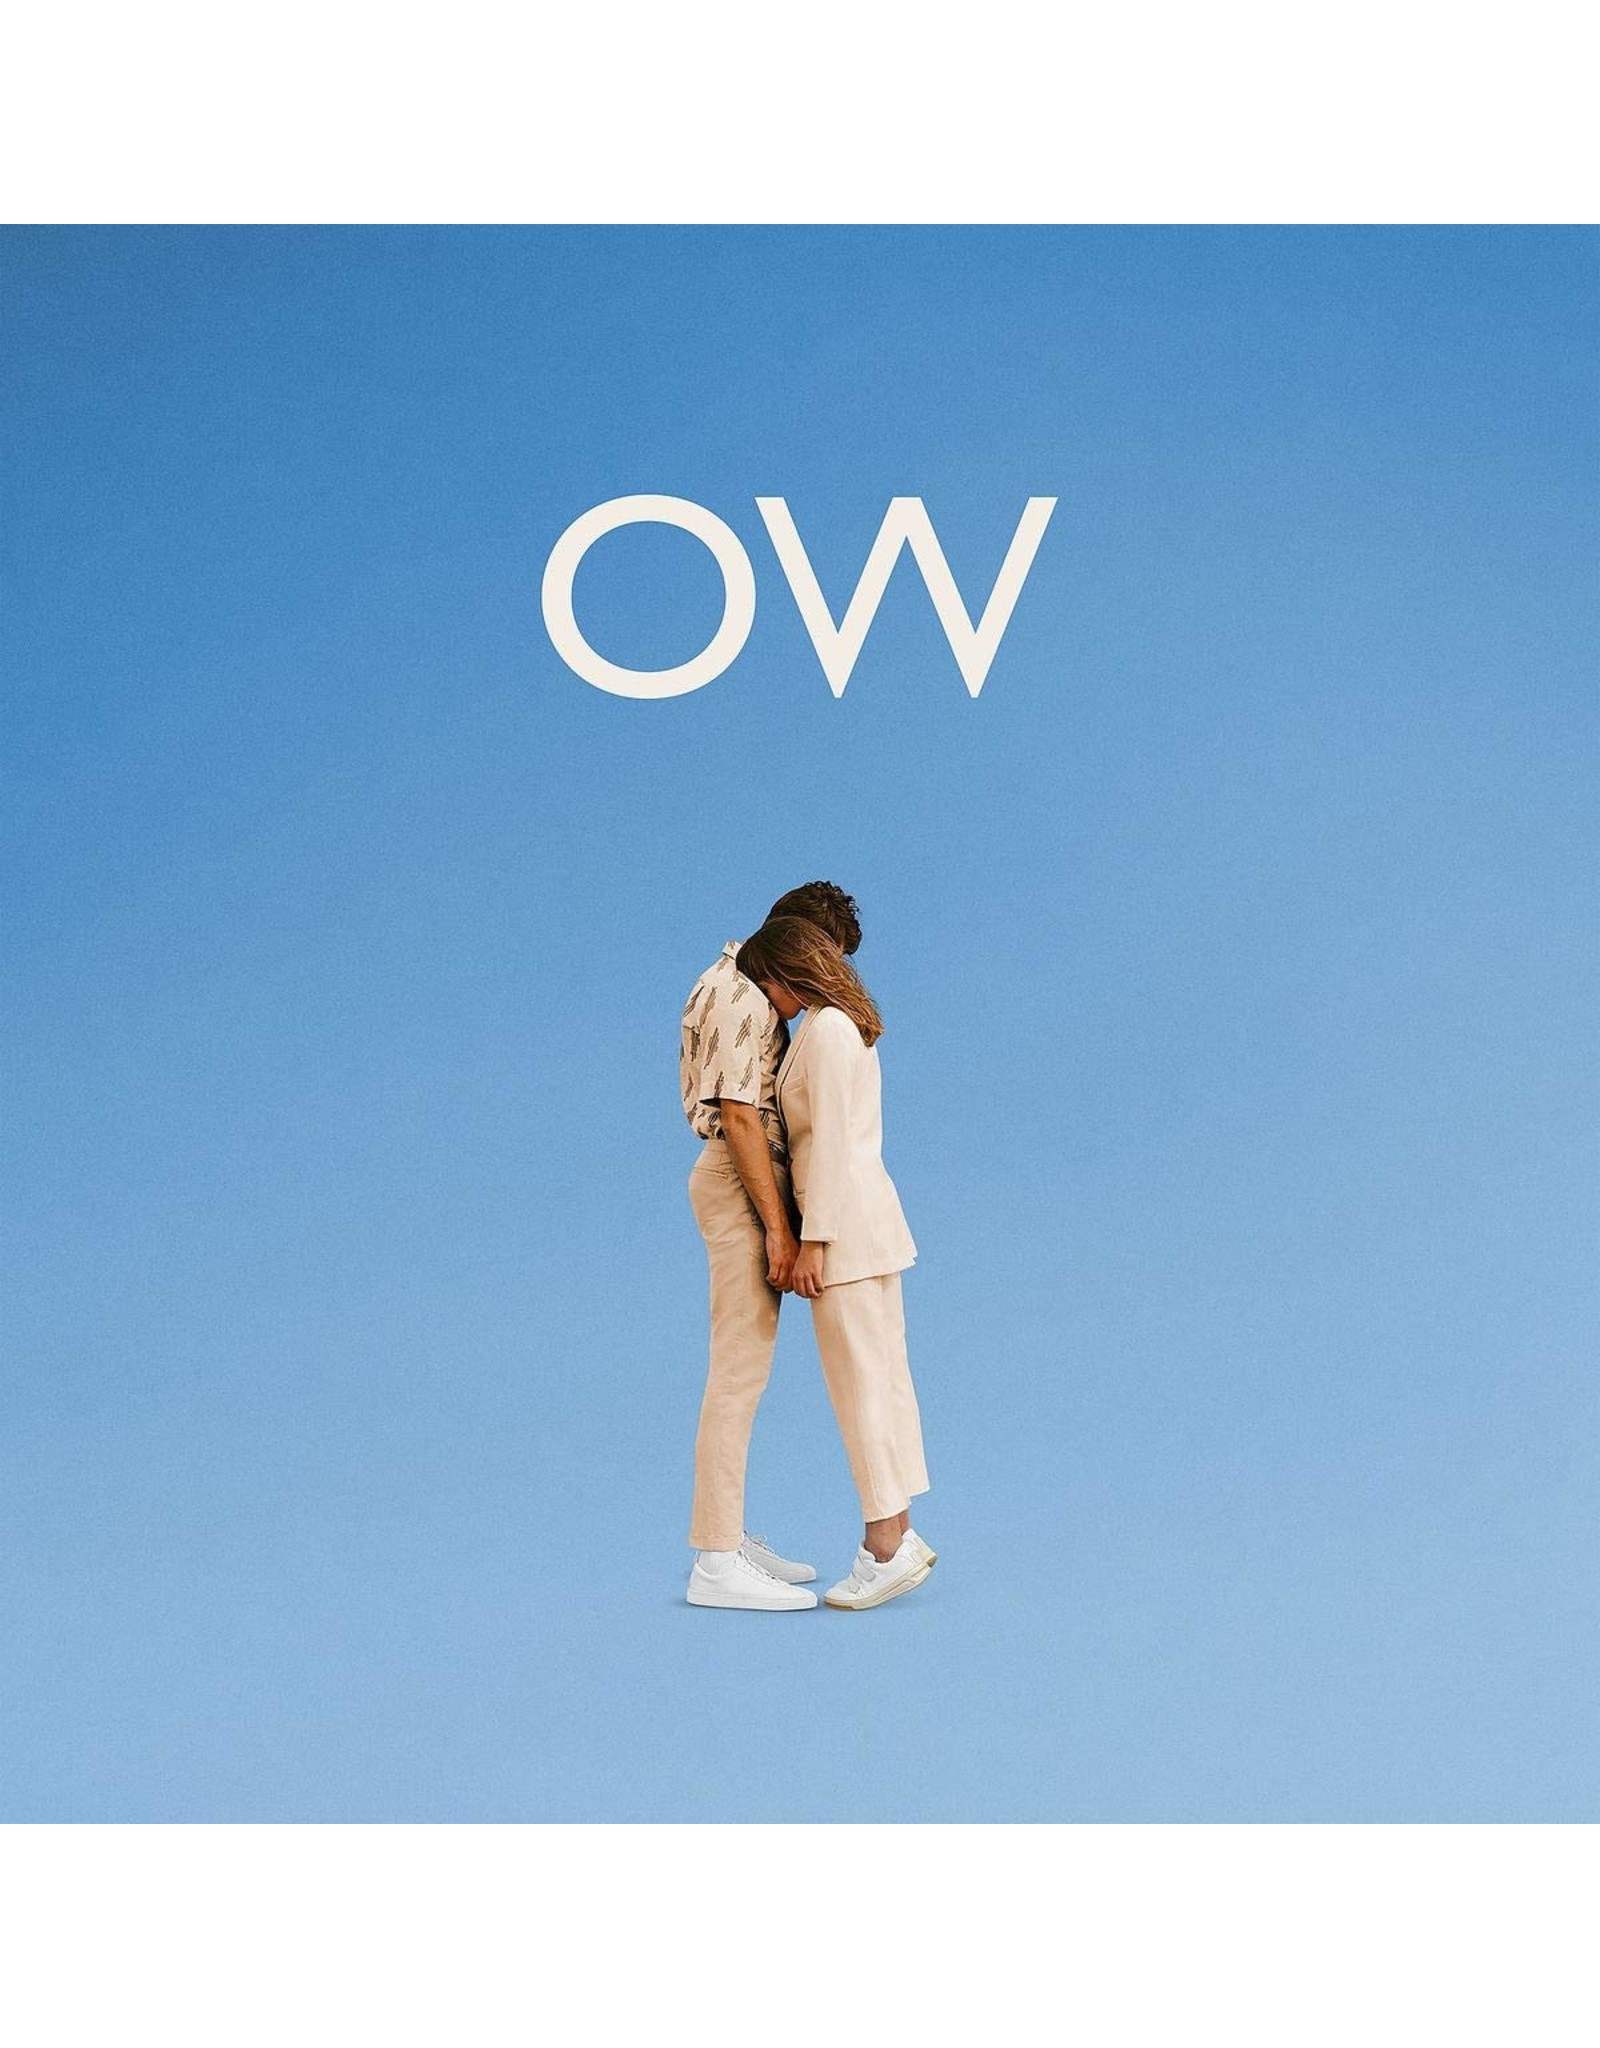 Oh Wonder - No One Else Can Wear Your Crown LP